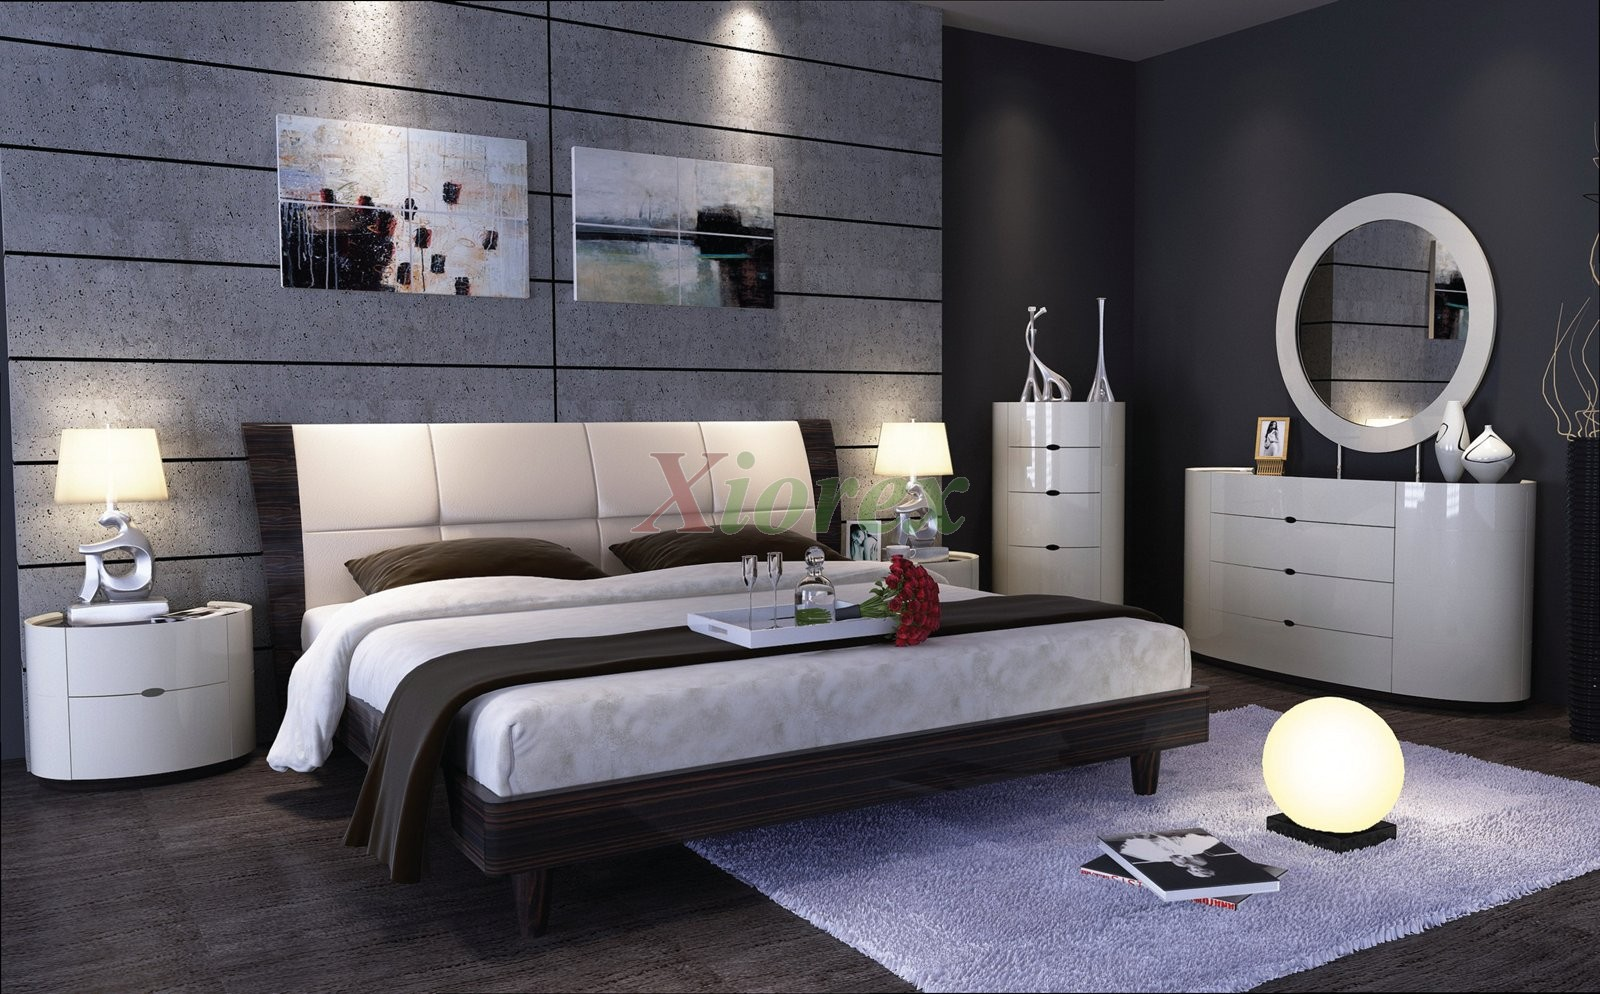 Bedroom Collections Are Shiny Modern Bed Sets With Strong Structure That Come Beautifully Designed Headboards And Deep Curved Corners On The